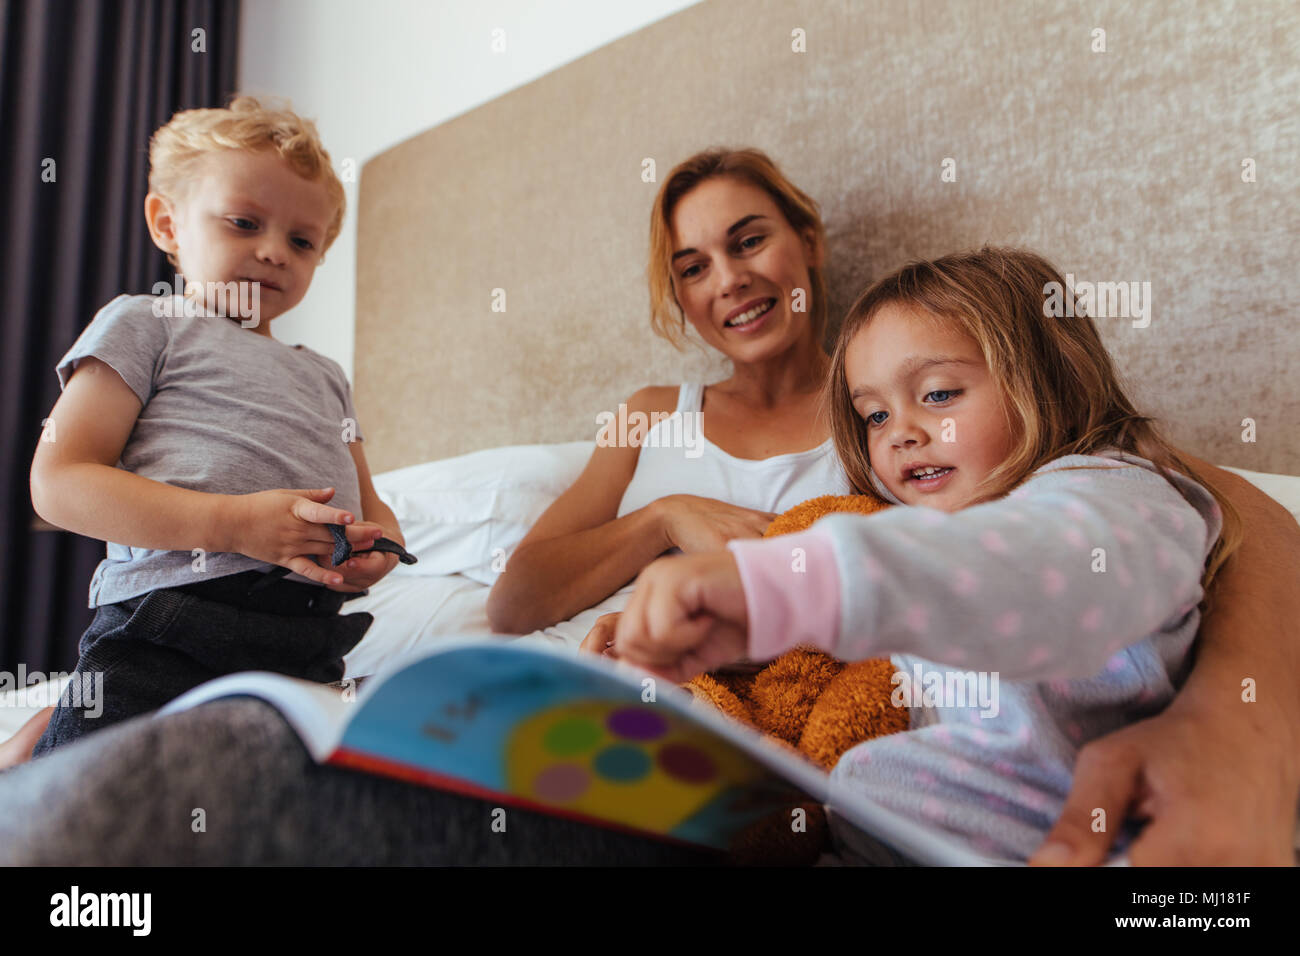 Young mom with her children on bed reading a story book. Cute little girl pointing at storybook while sitting with her mother and brother on bed. Stock Photo